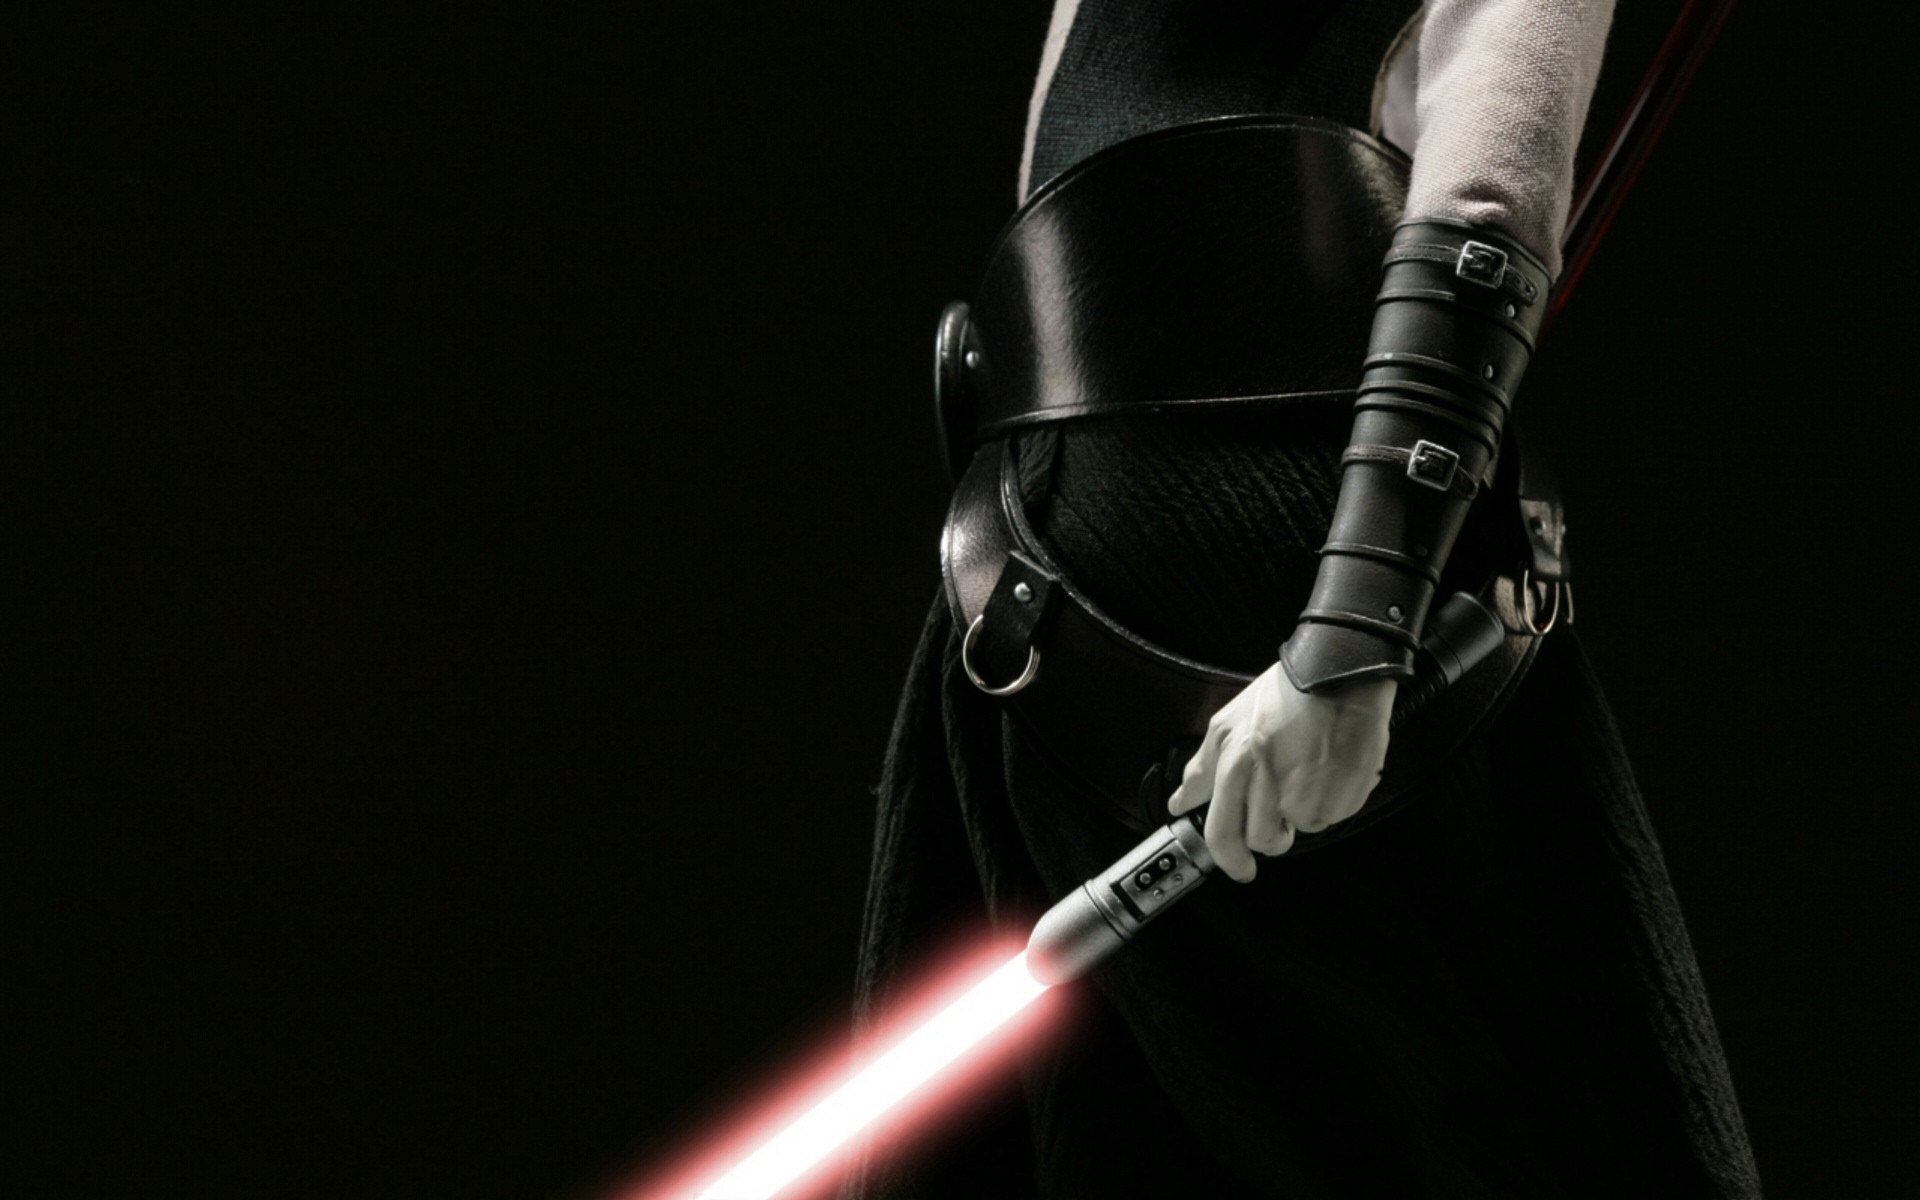 Sith and Saber HD Wallpapers, Sith and Saber Desktop Wallpapers, Sith .